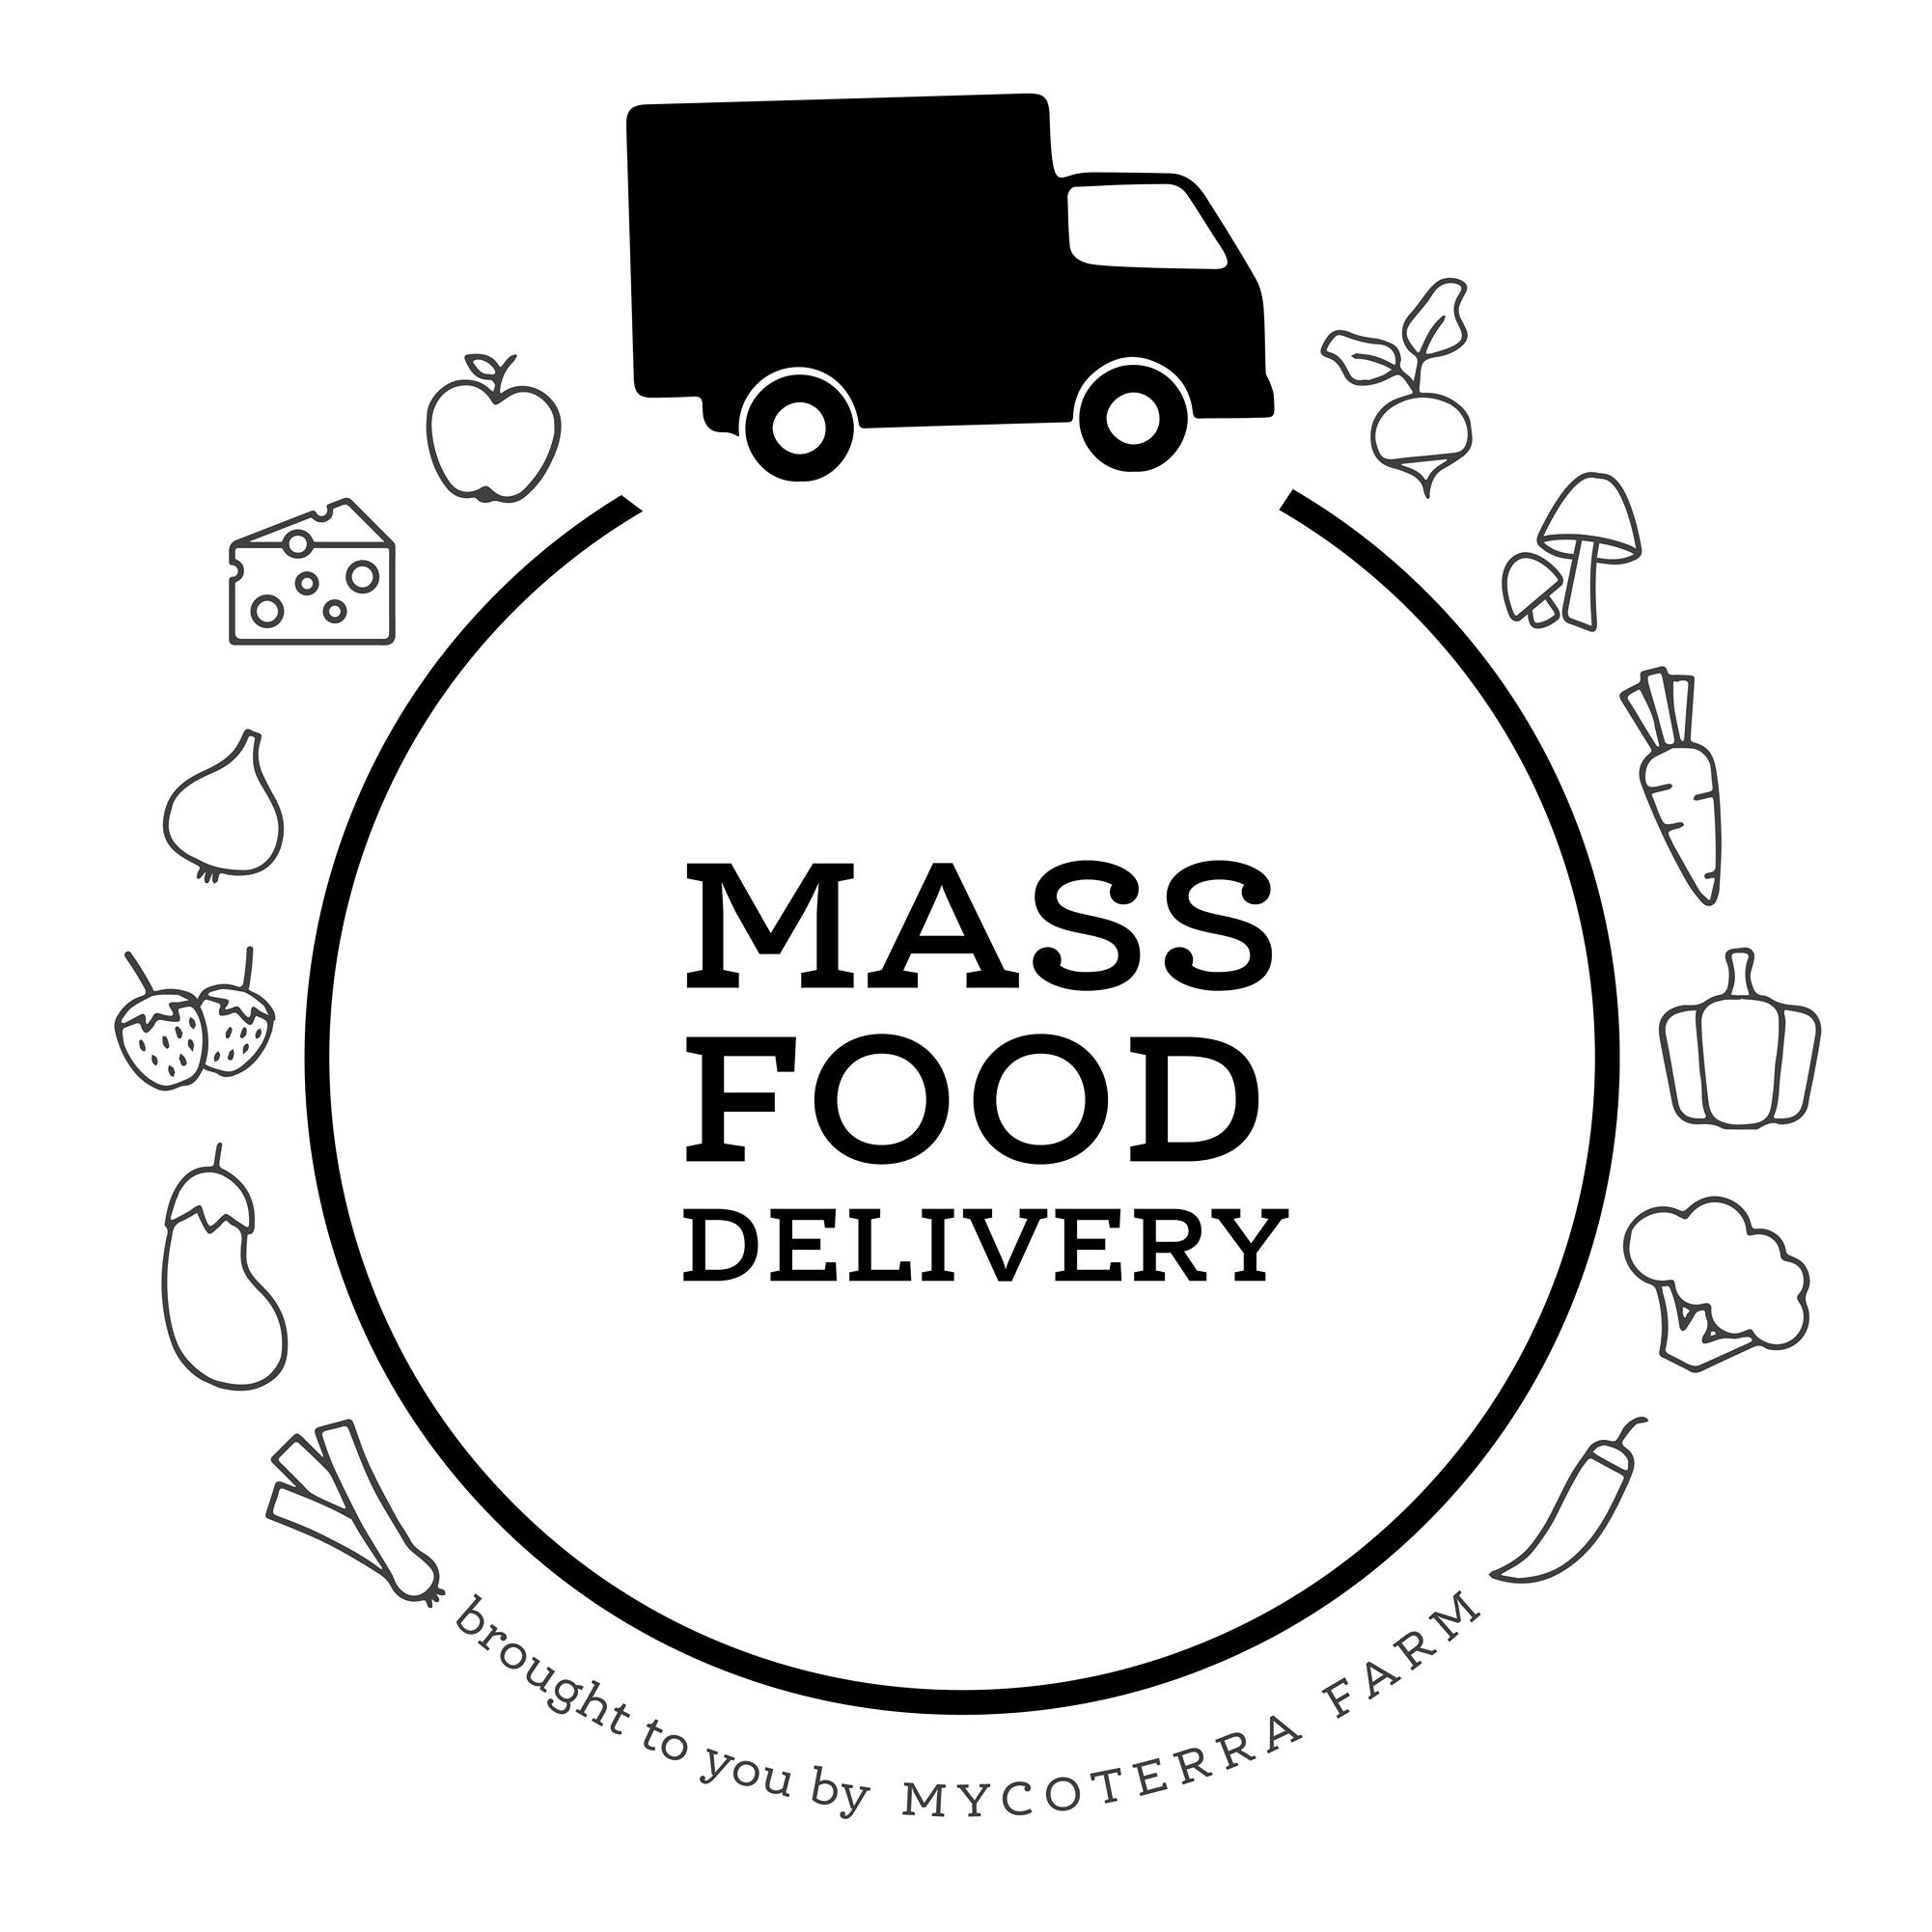 Mass Food Delivery